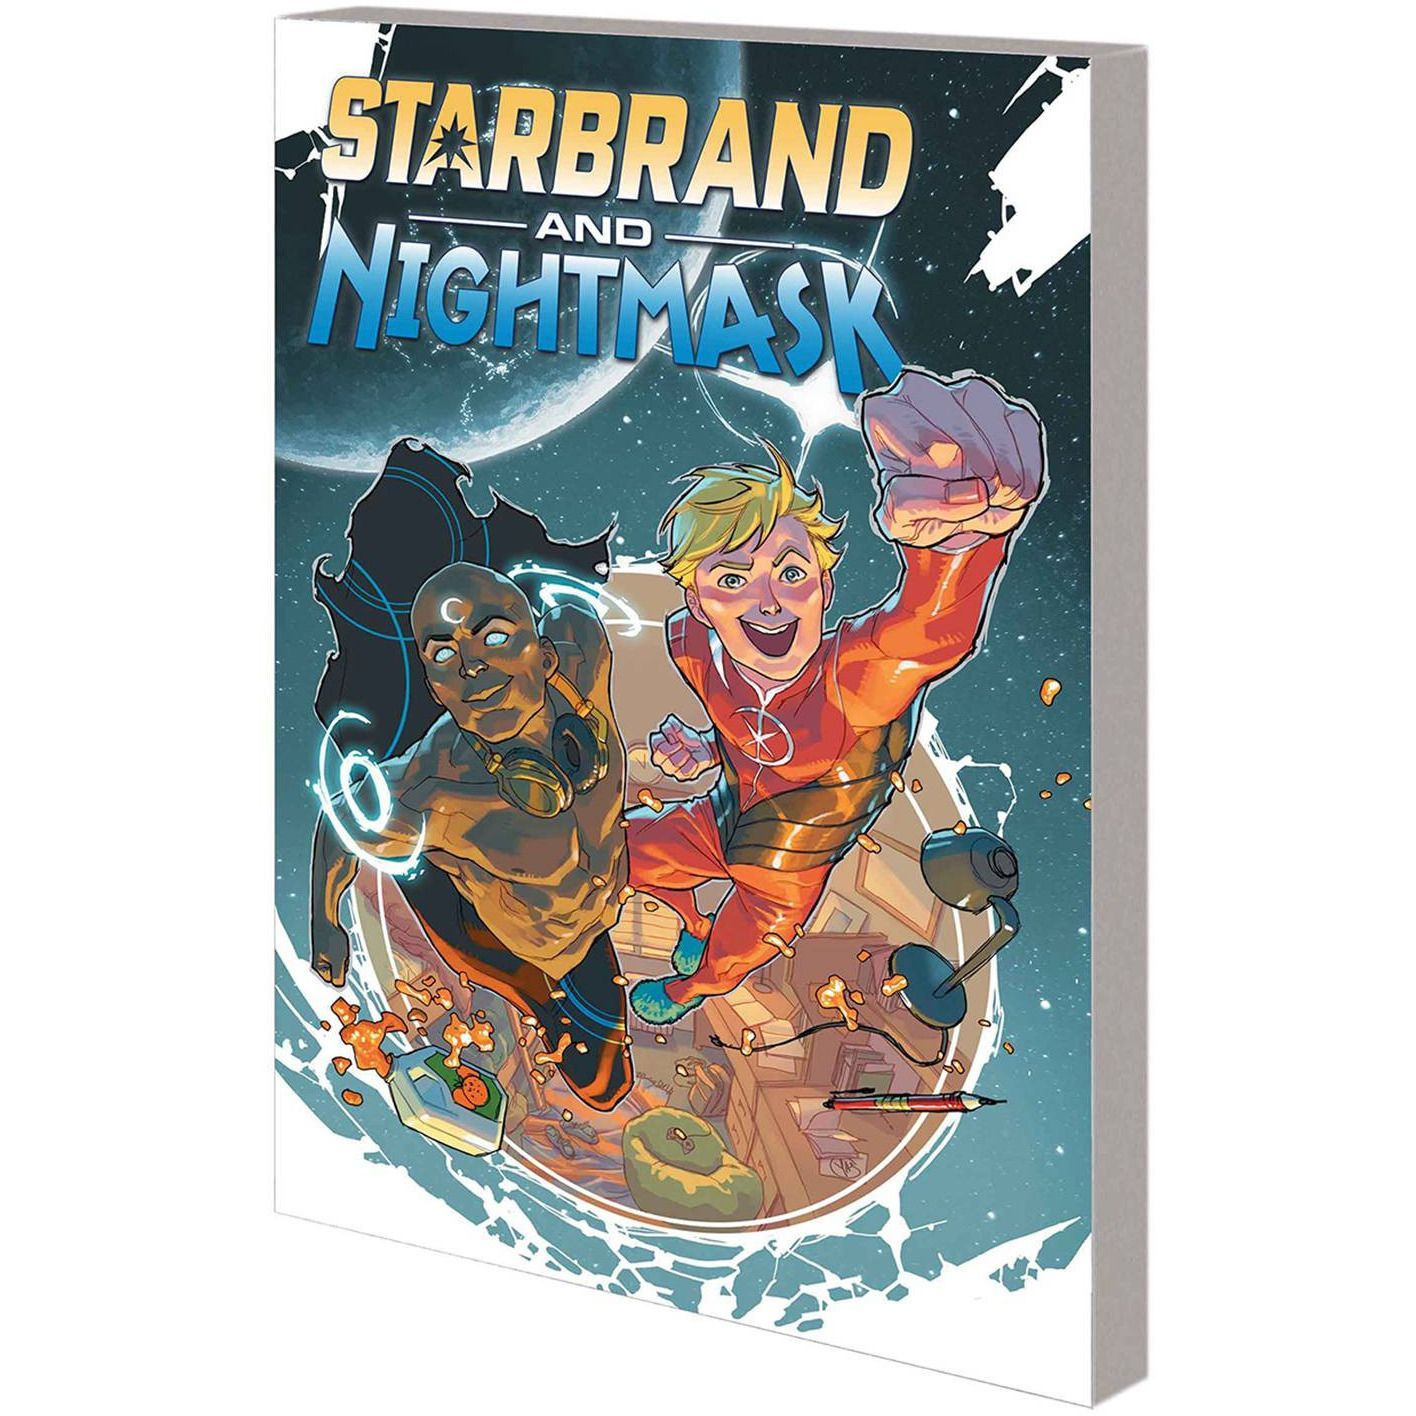 Starbrand and Nightmask: Eternity's Children (Attend University) TP Uncanny!